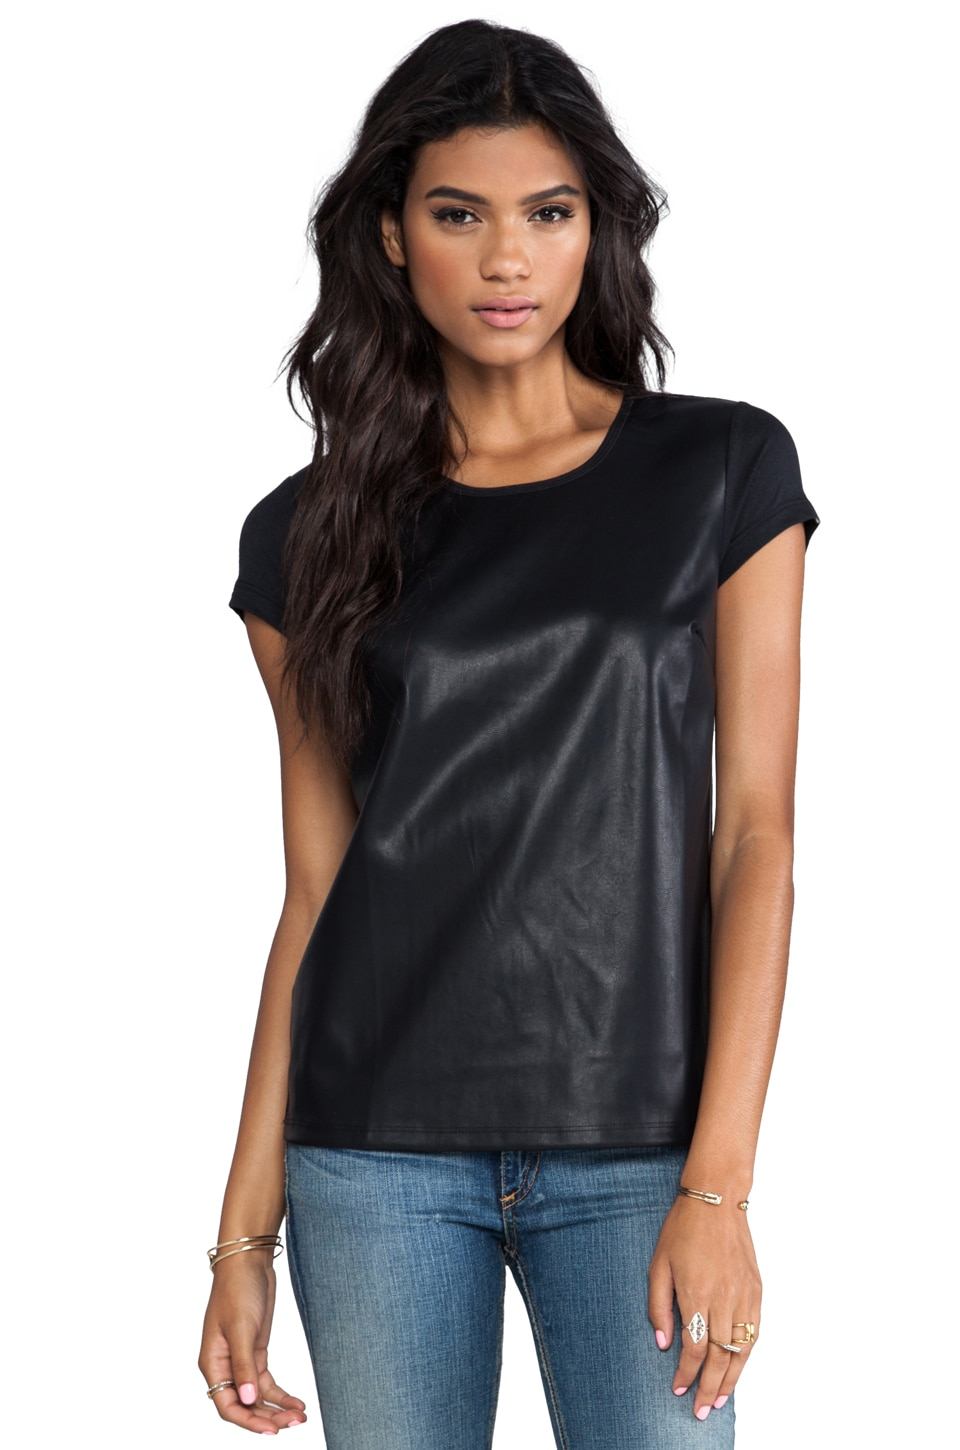 Bobi Faux Leather Front Tee in Black